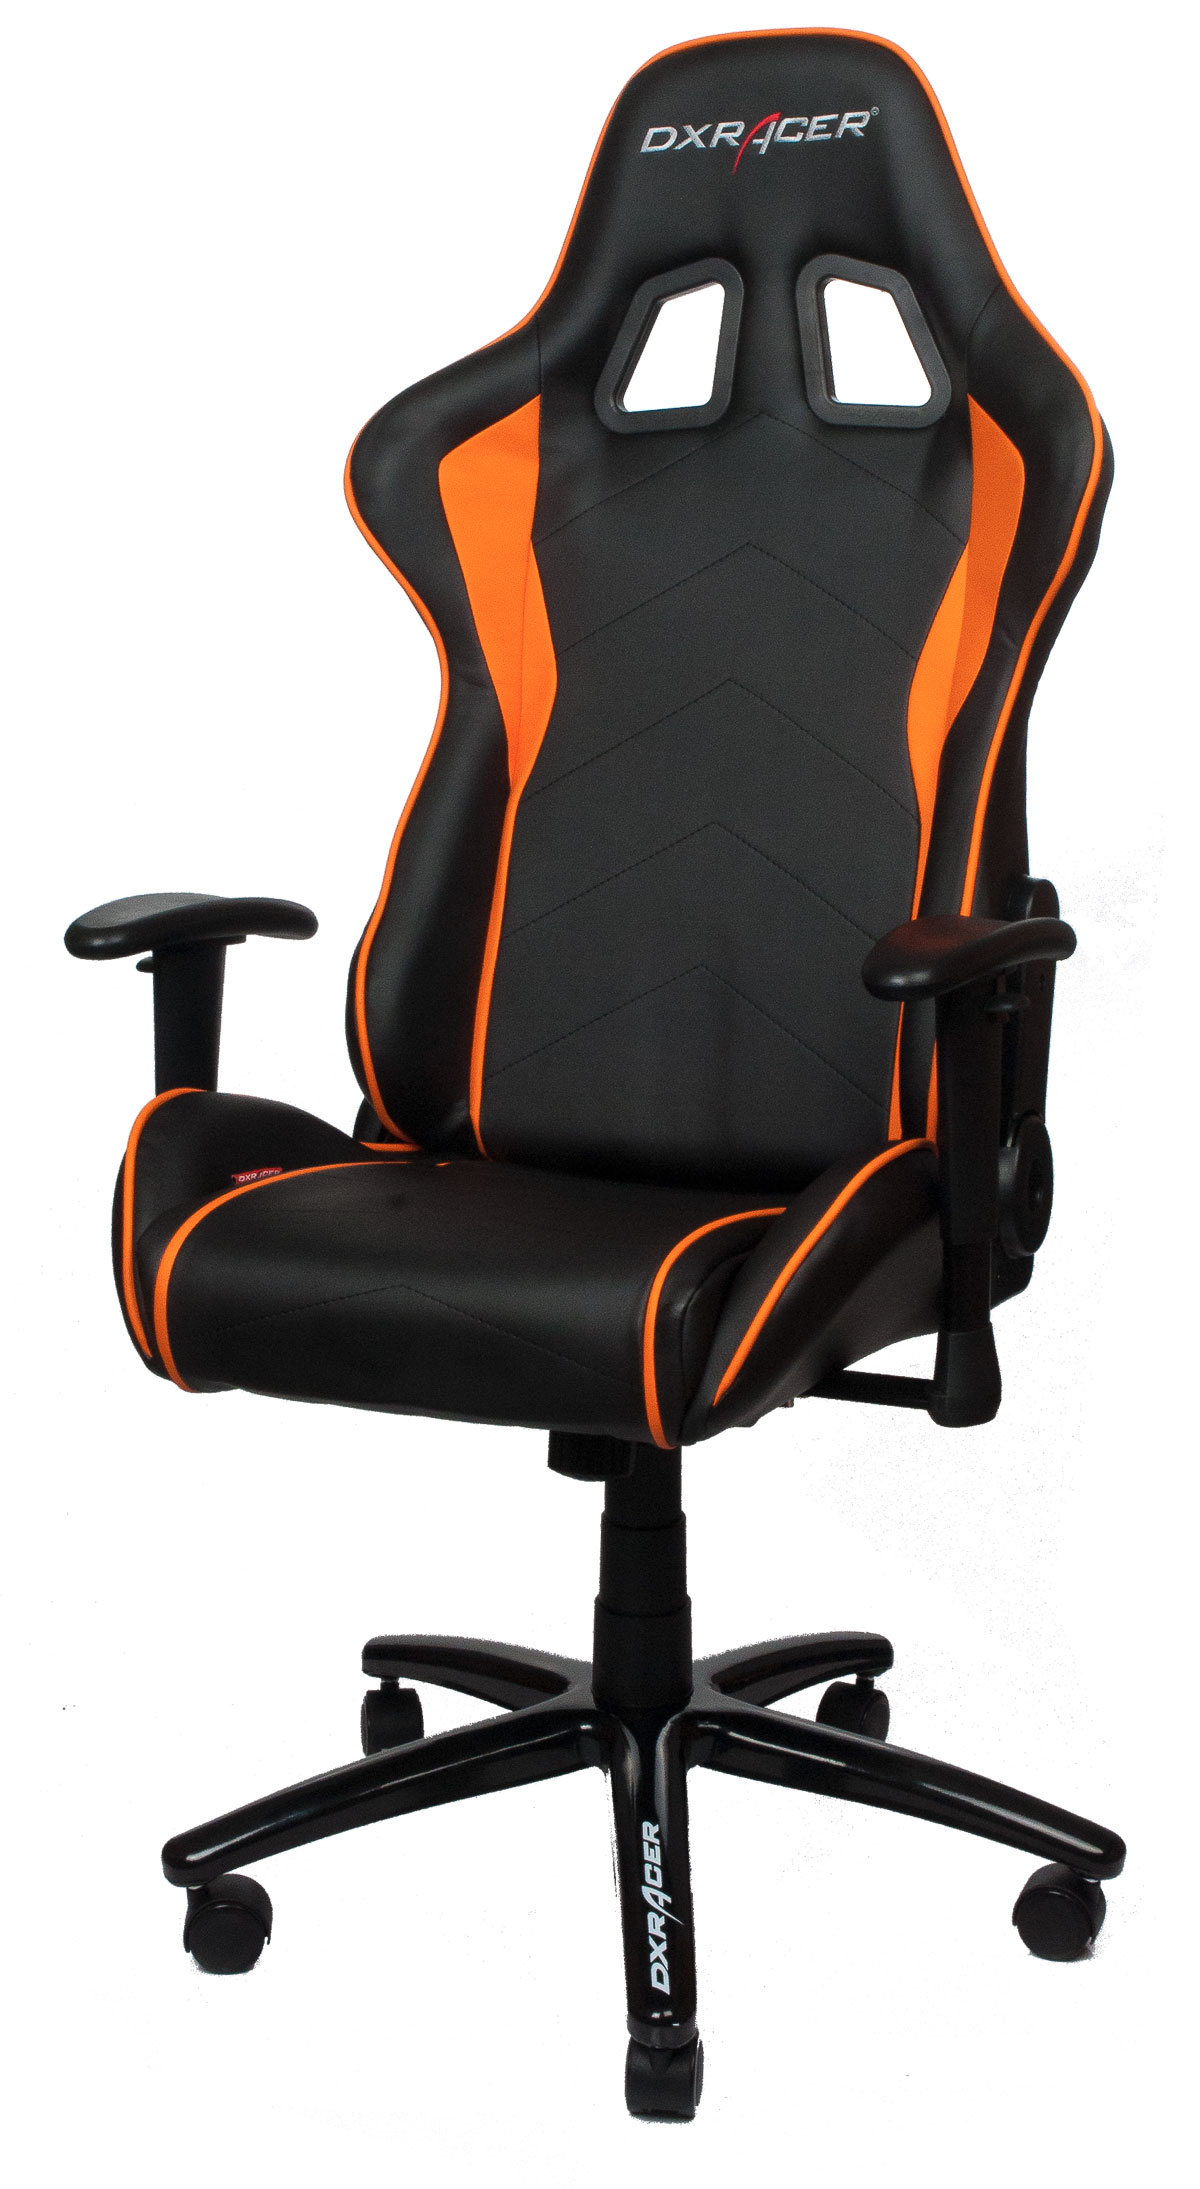 custom gamer chair s p i w